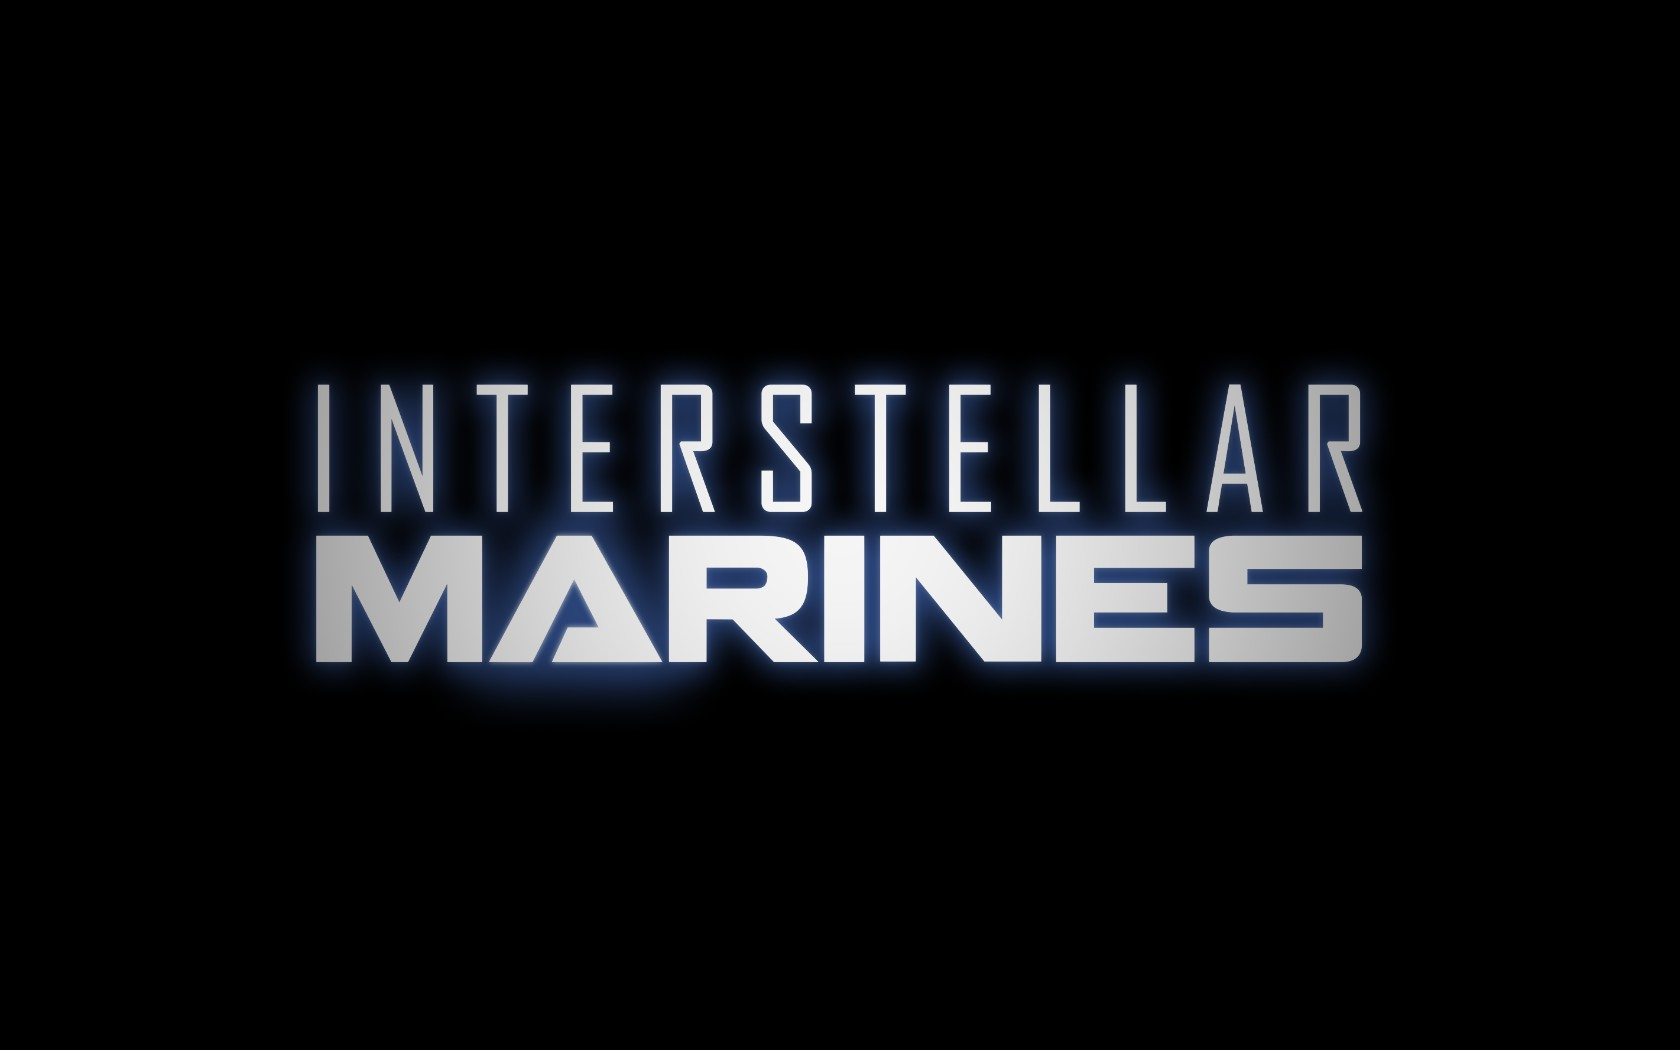 'Interstellar Marines' Might Be Getting Immersive Shooters Right